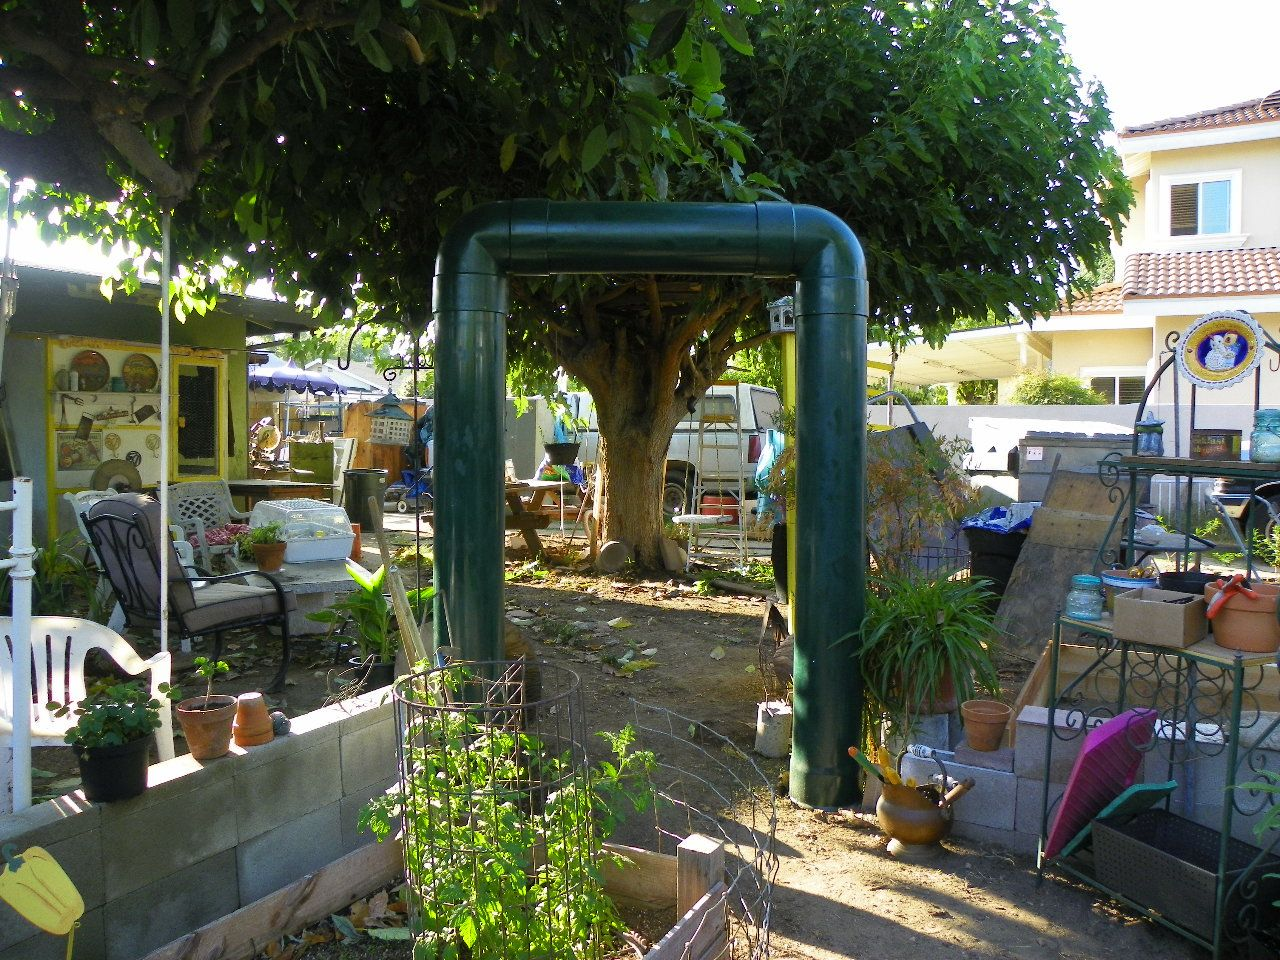 The arch we use to enter the garden is made out of heavy duty PVC pipes & The arch we use to enter the garden is made out of heavy duty PVC ...